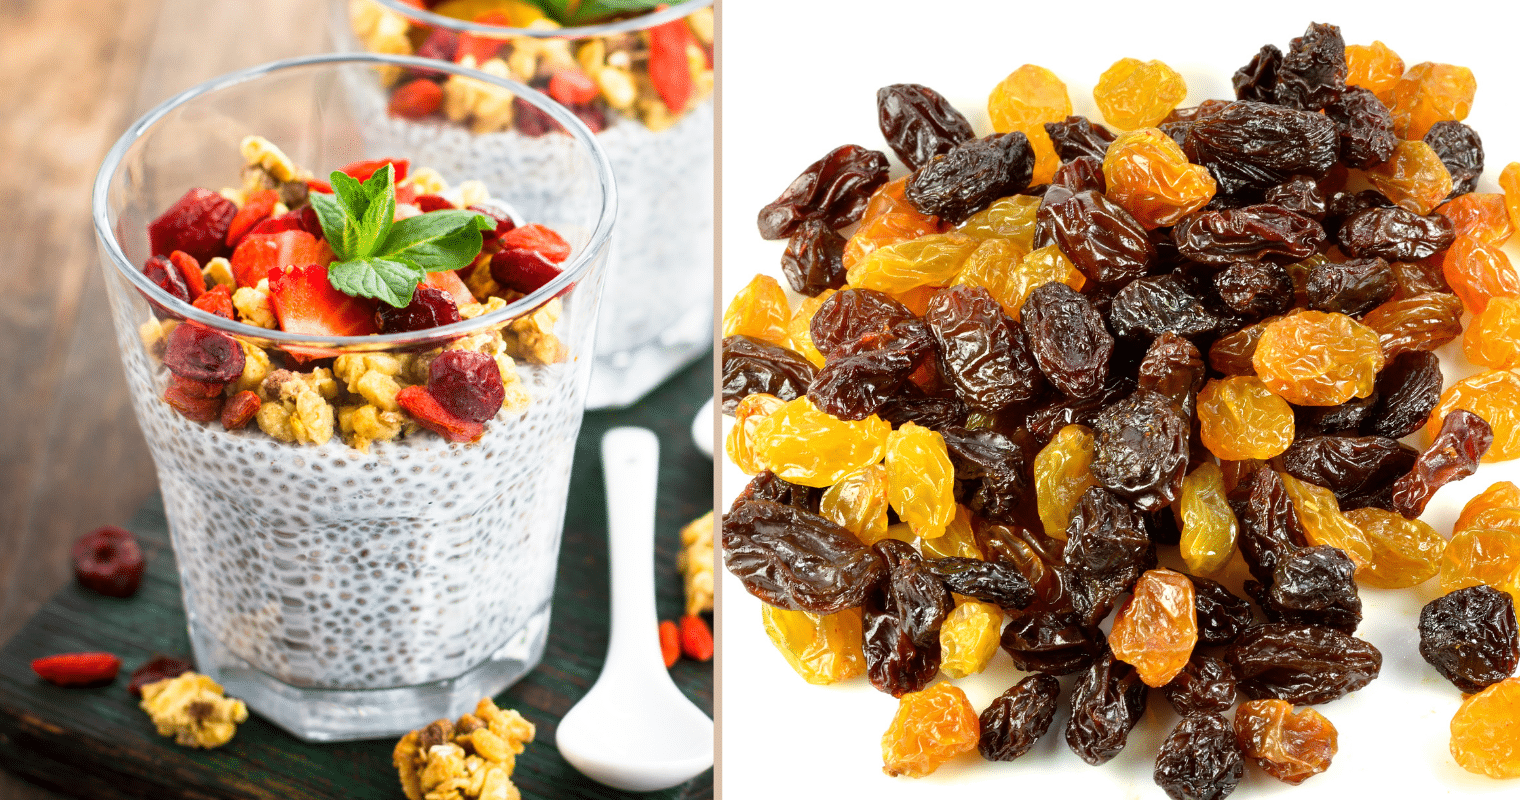 13 Foods Which Act As Natural Laxatives